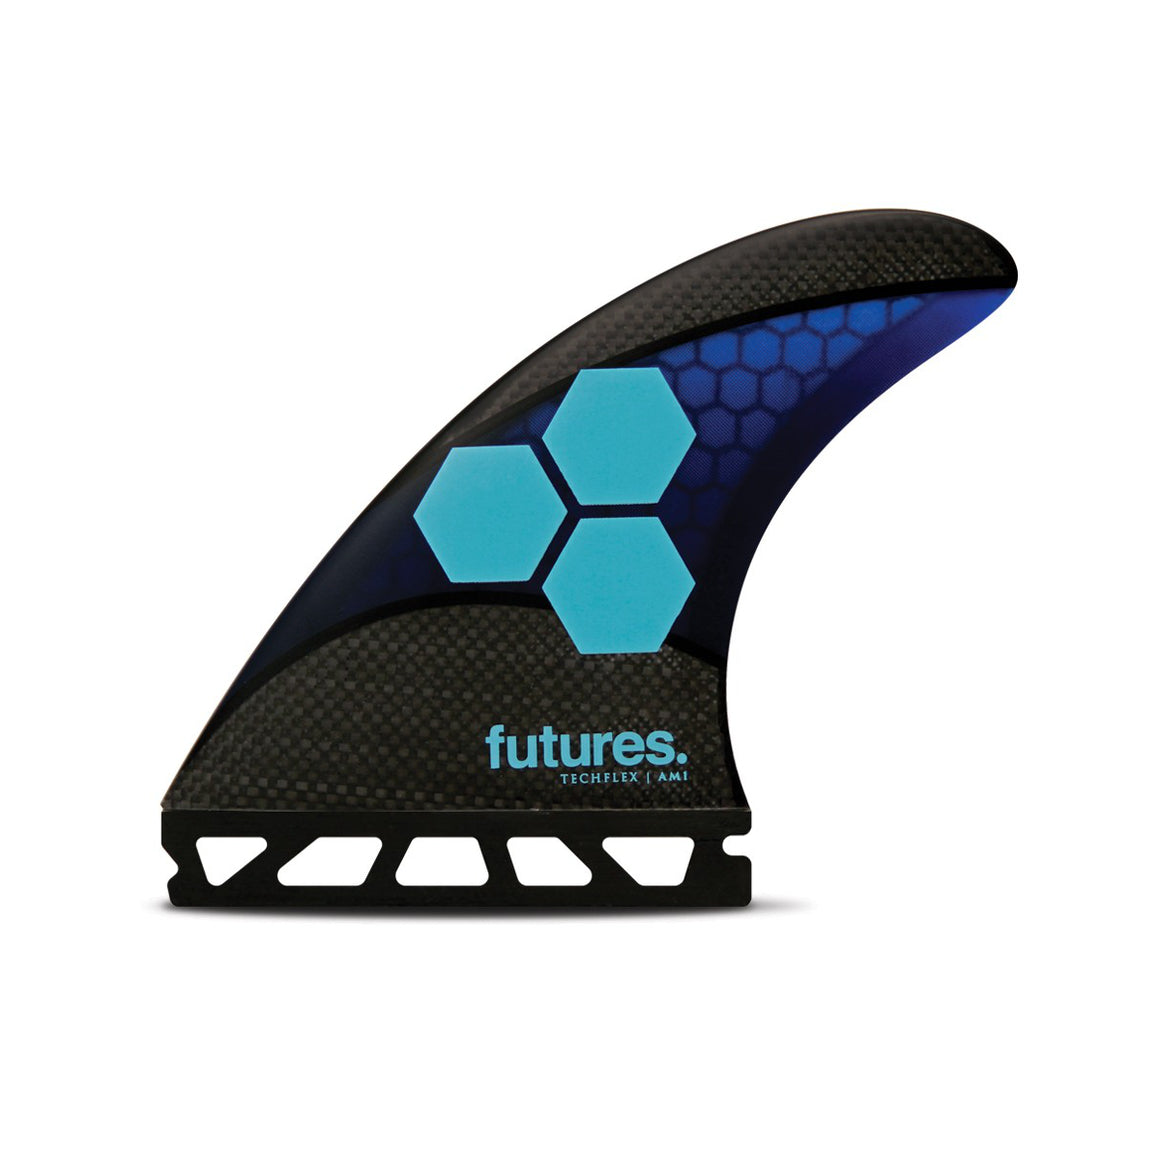 Futures - THRUSTERS - AM1 - Blue/Cyan - Techflex